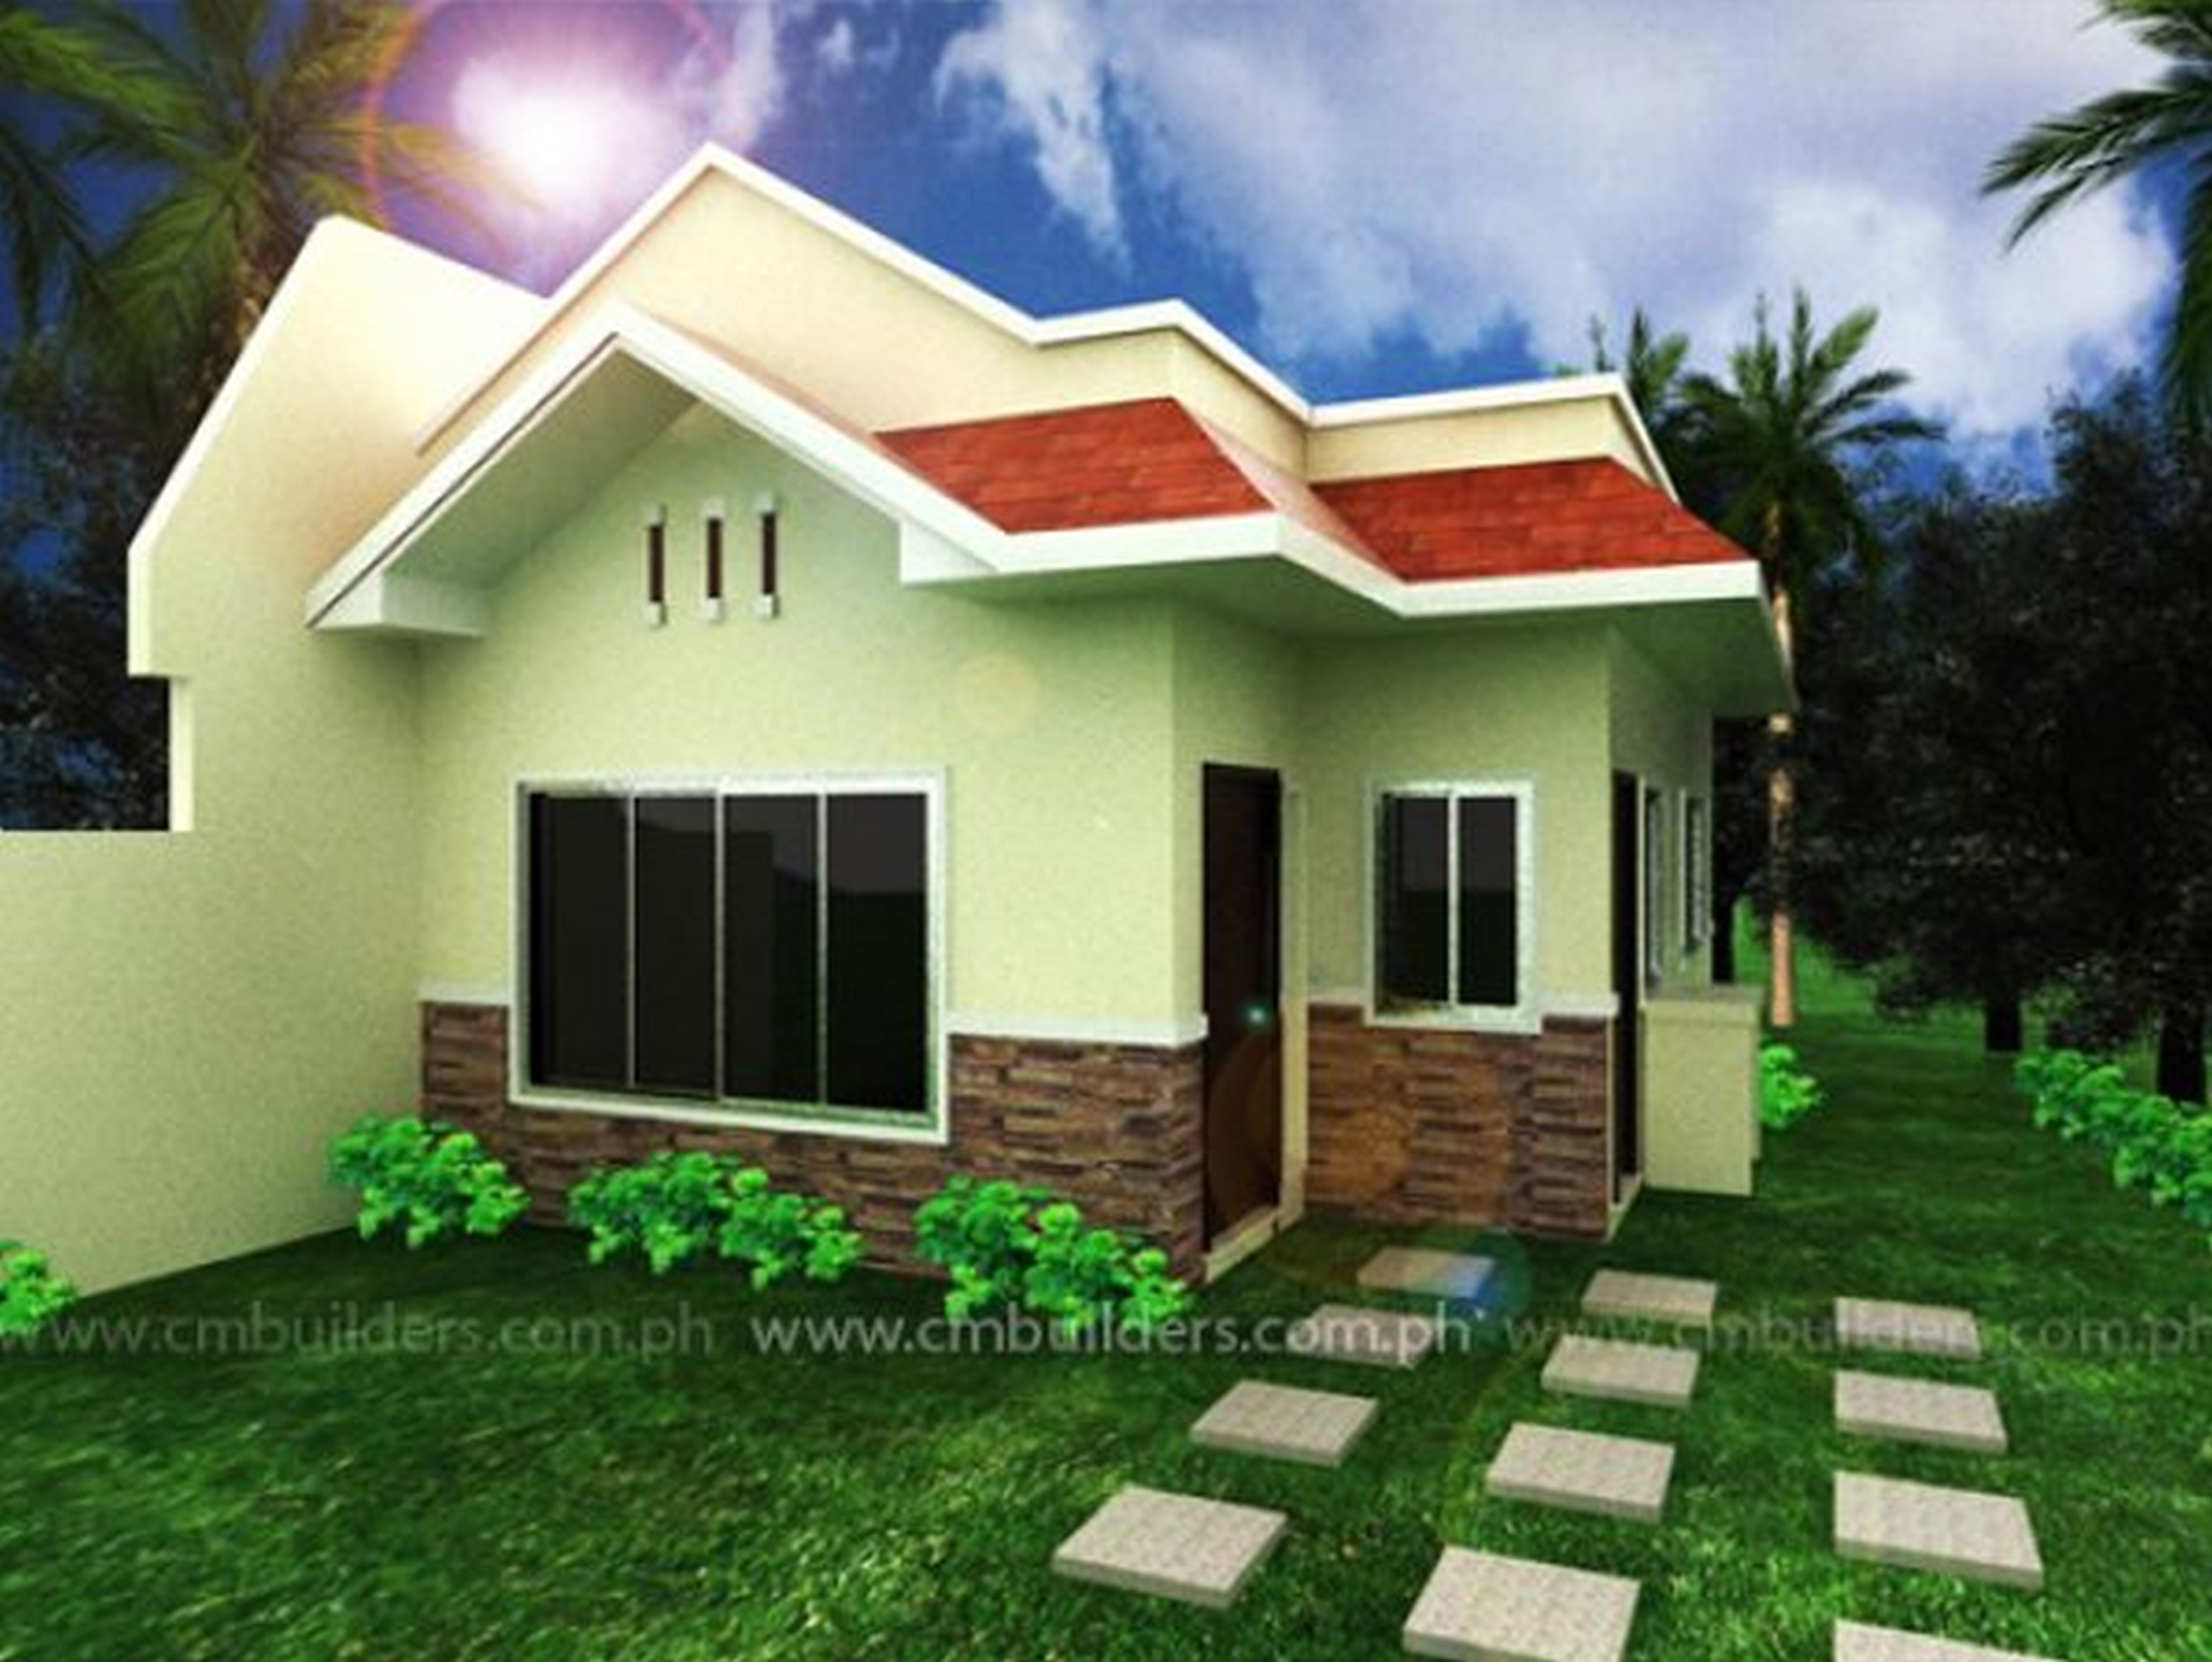 Decorating Adorable Futuristic Houses Bungalow Cool House Plans Good Looking Tiny Hou Philippines House Design House Paint Exterior Mediterranean House Designs